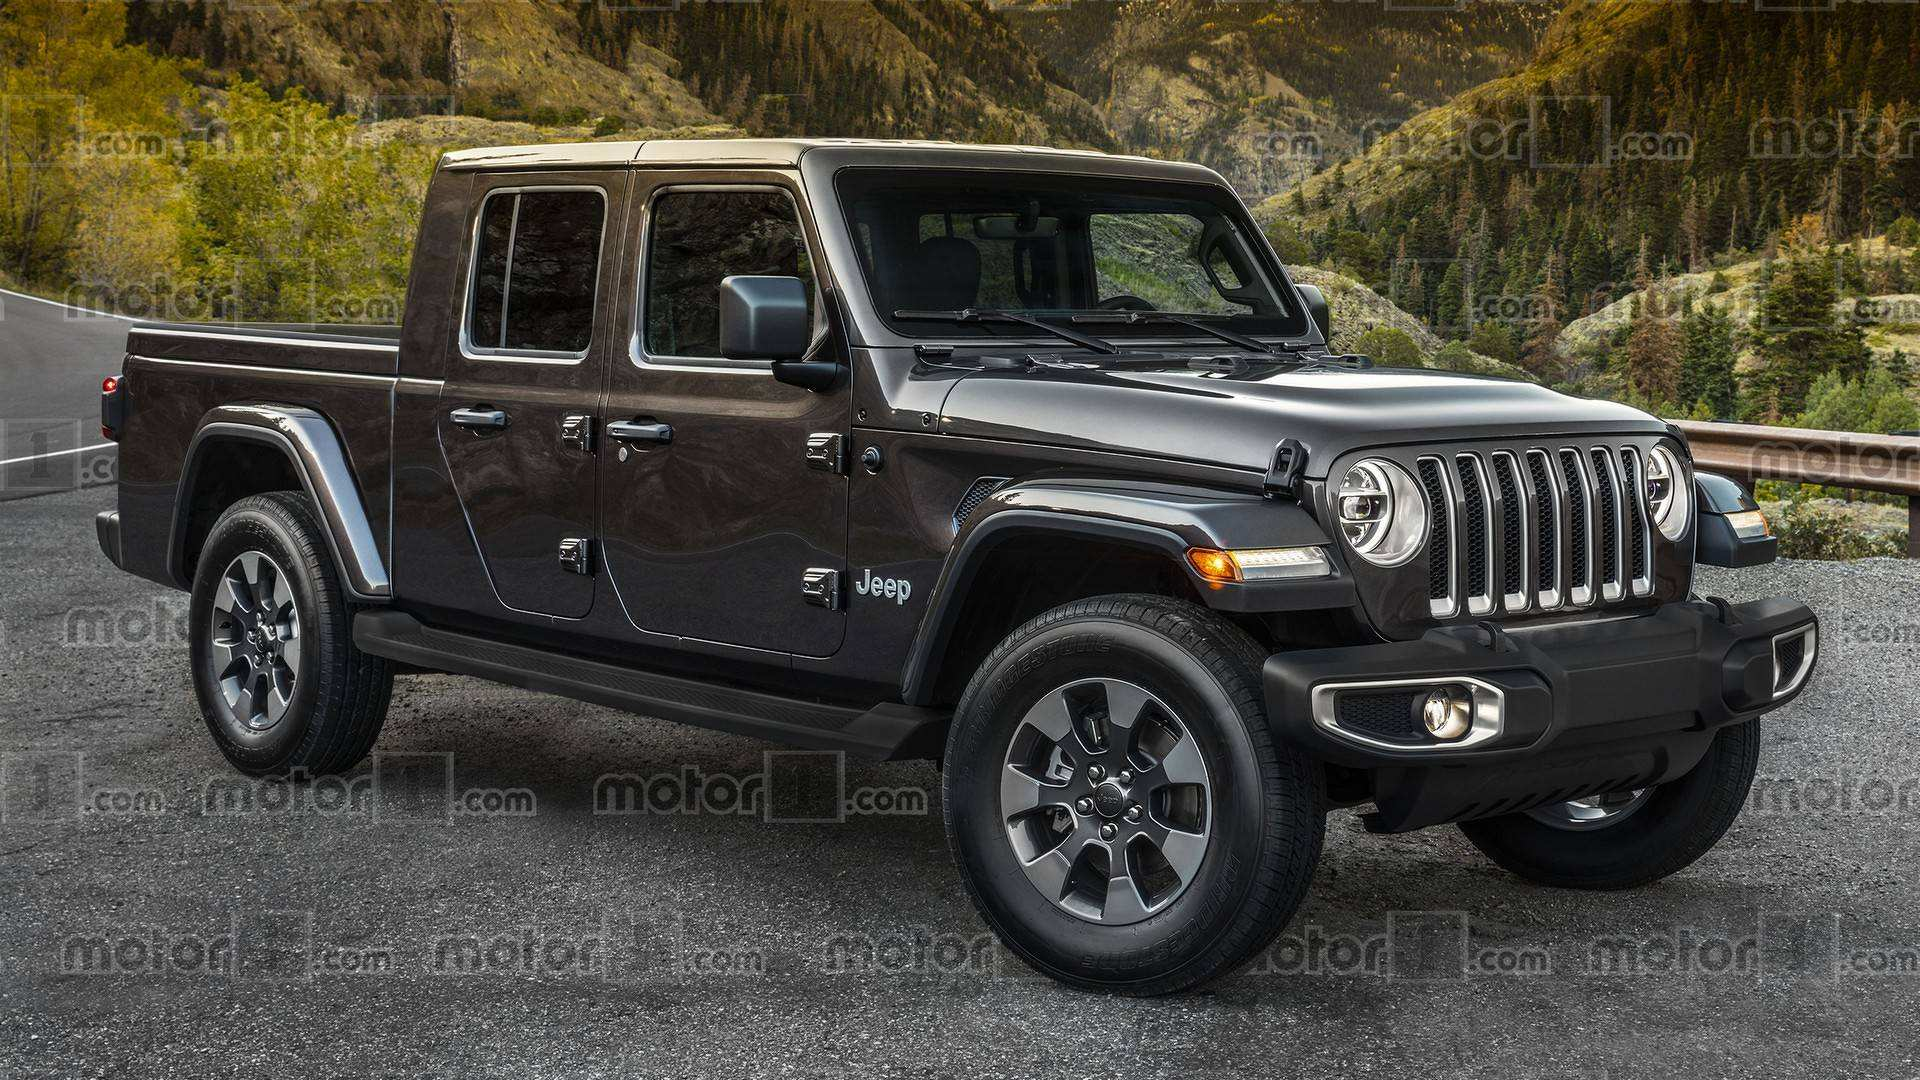 71 Gallery of 2019 Jeep Wrangler Pickup Msrp Wallpaper for 2019 Jeep Wrangler Pickup Msrp